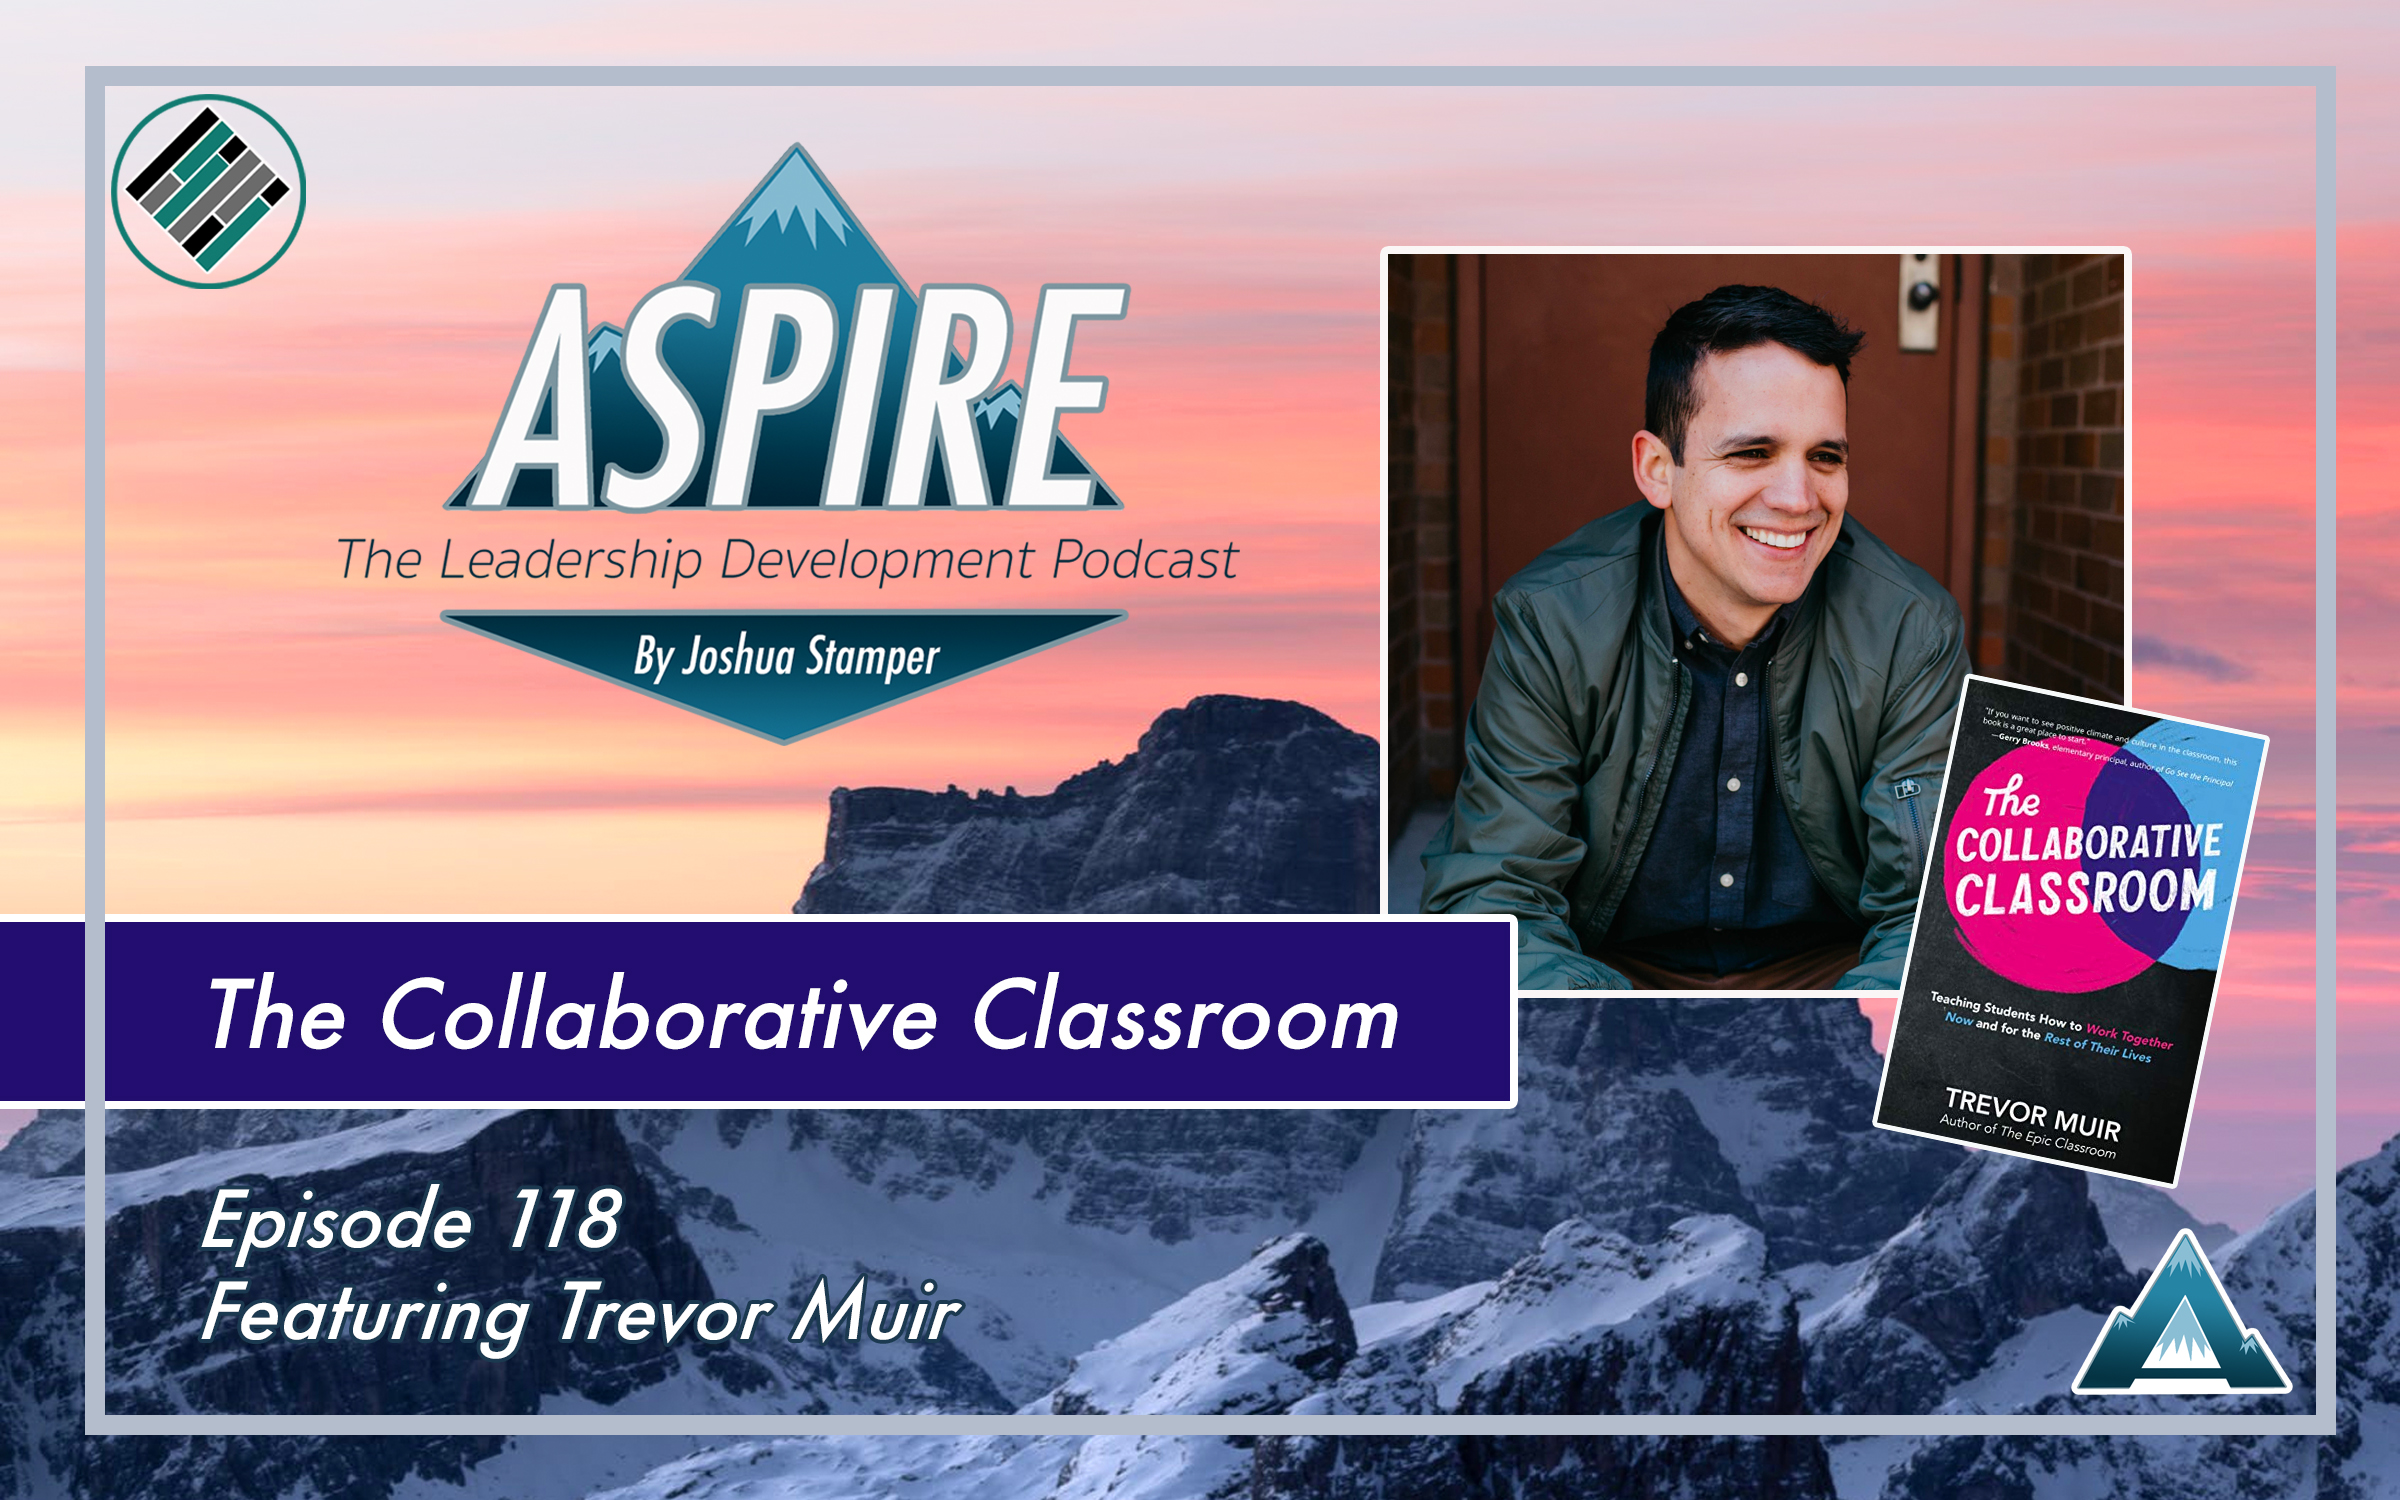 Trevor Muir, The Collaborative Classroom, Aspire: The Leadership Development Podcast, Joshua Stamper